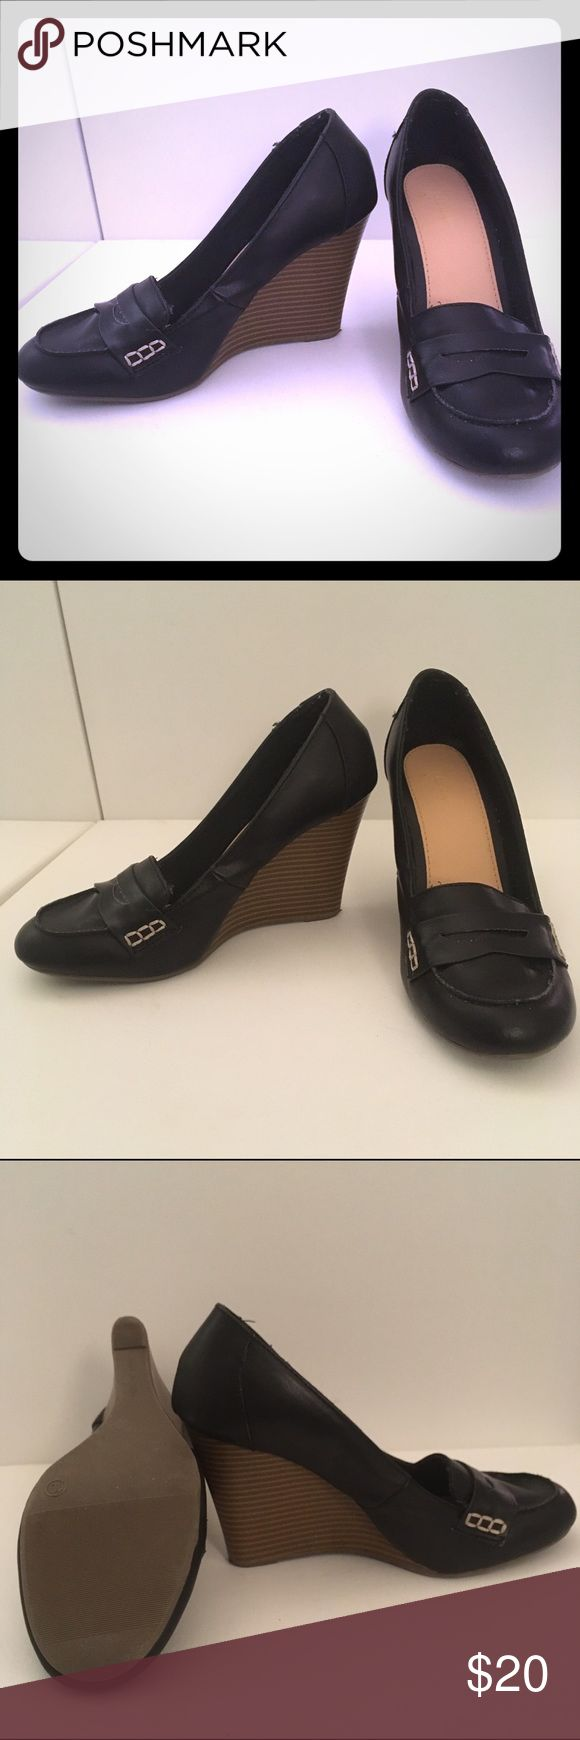 Old Navy Black Wedge Loafers Worn once. Basically brand new. Black 2.5 in loafer-like wedge. Size 10. Old Navy Shoes Wedges